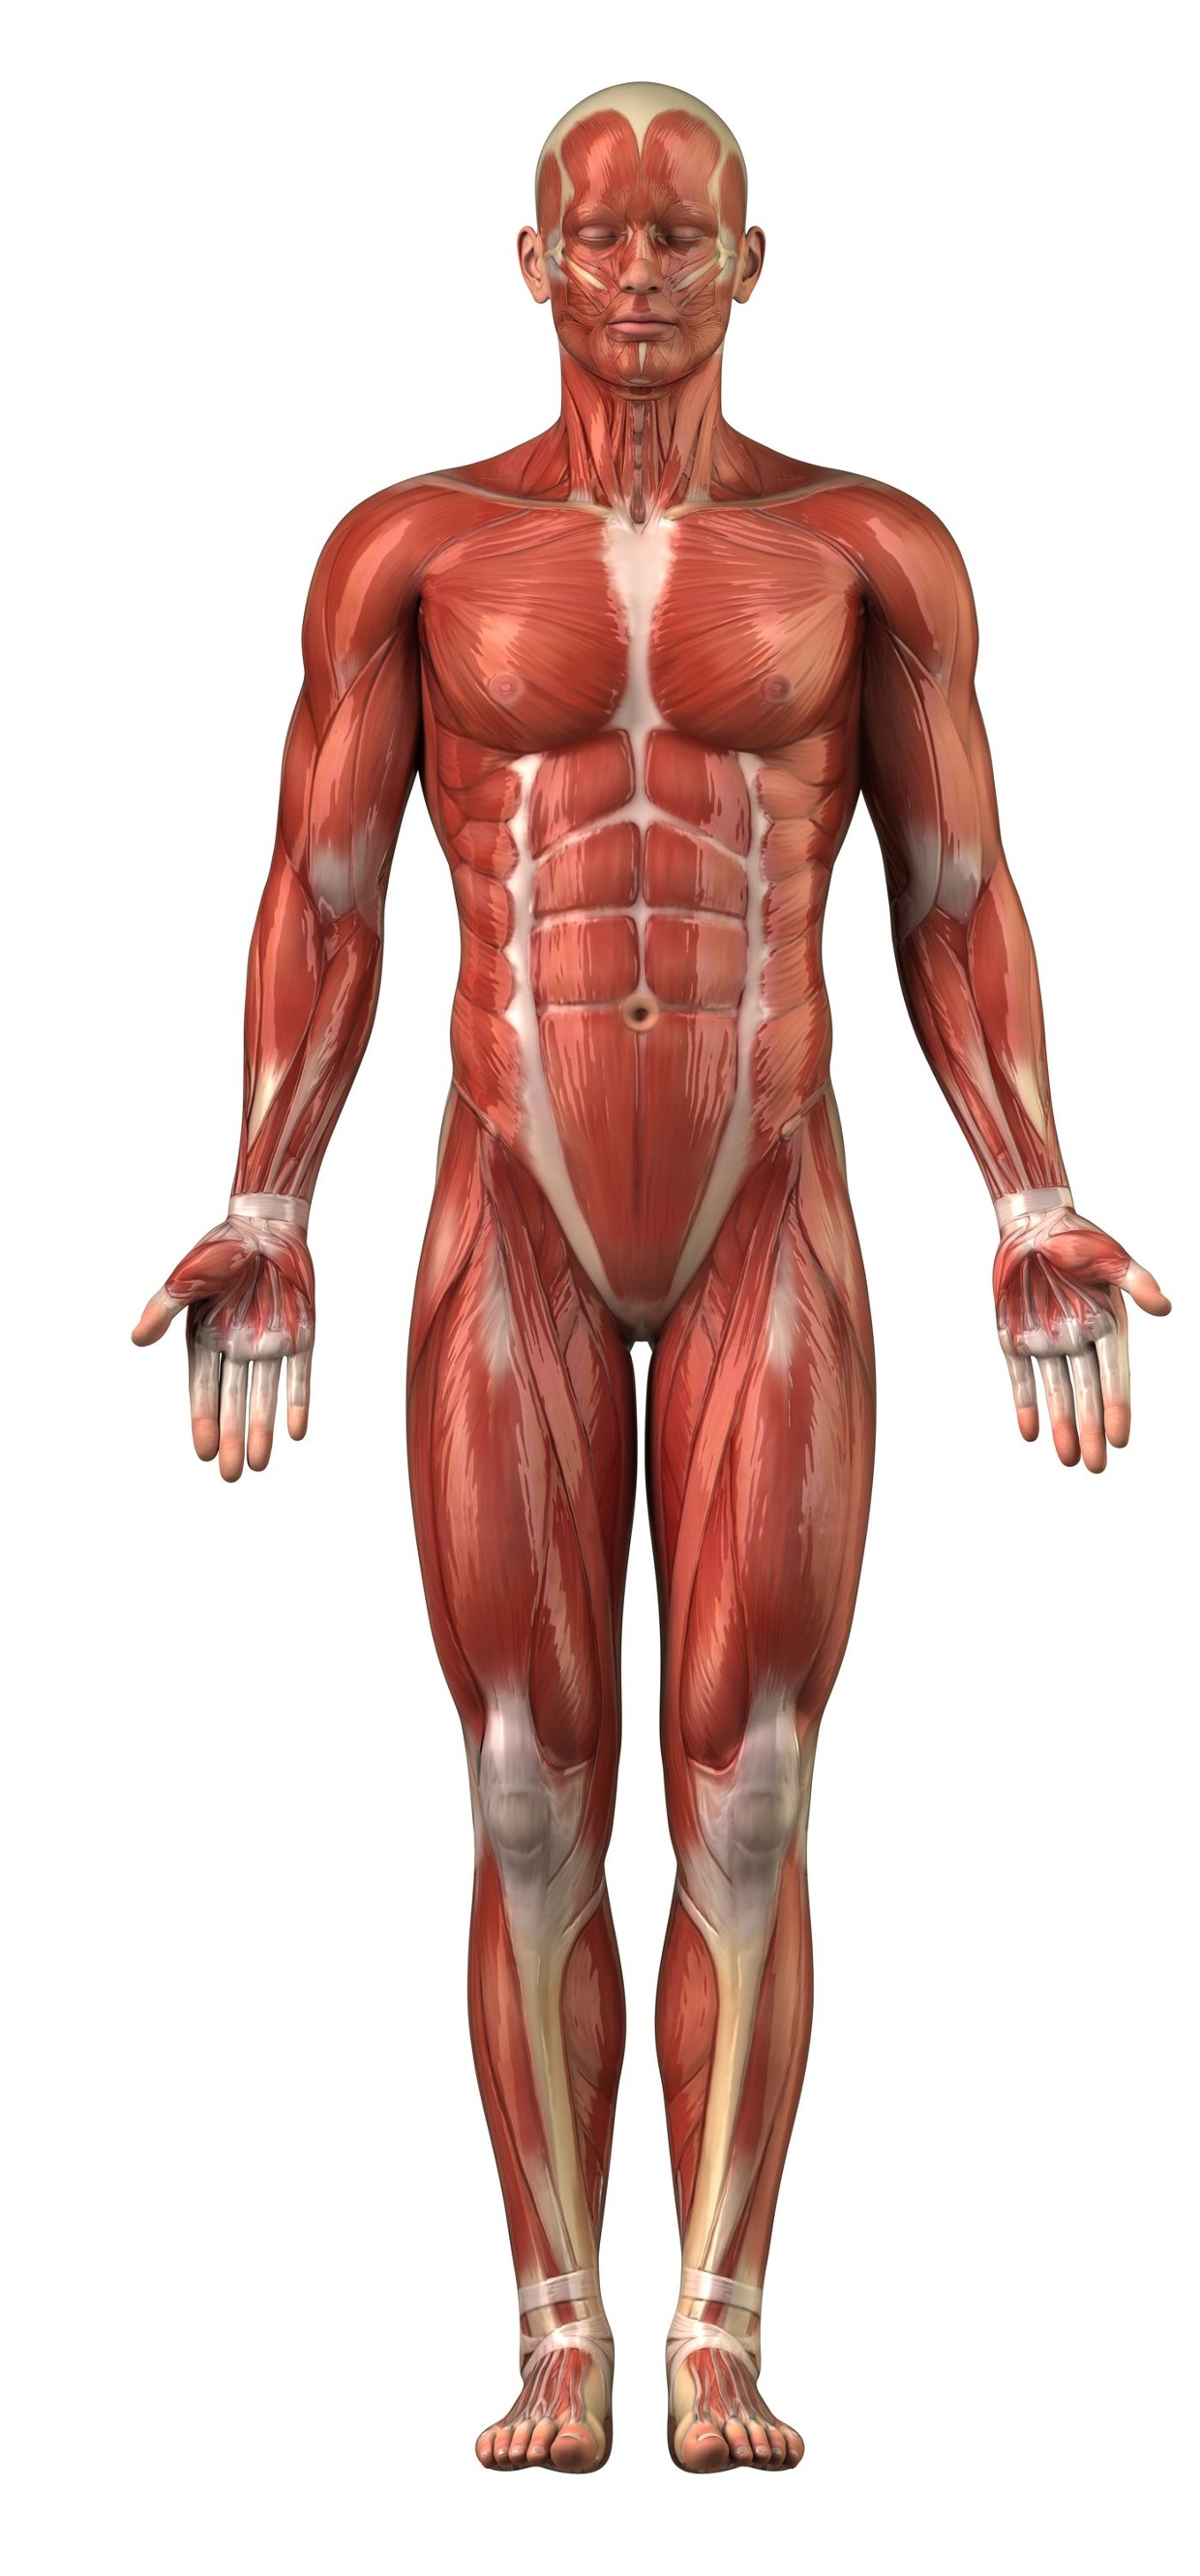 Bicep Muscle Deltoid Muscle Pectorals Quadriceps Fron